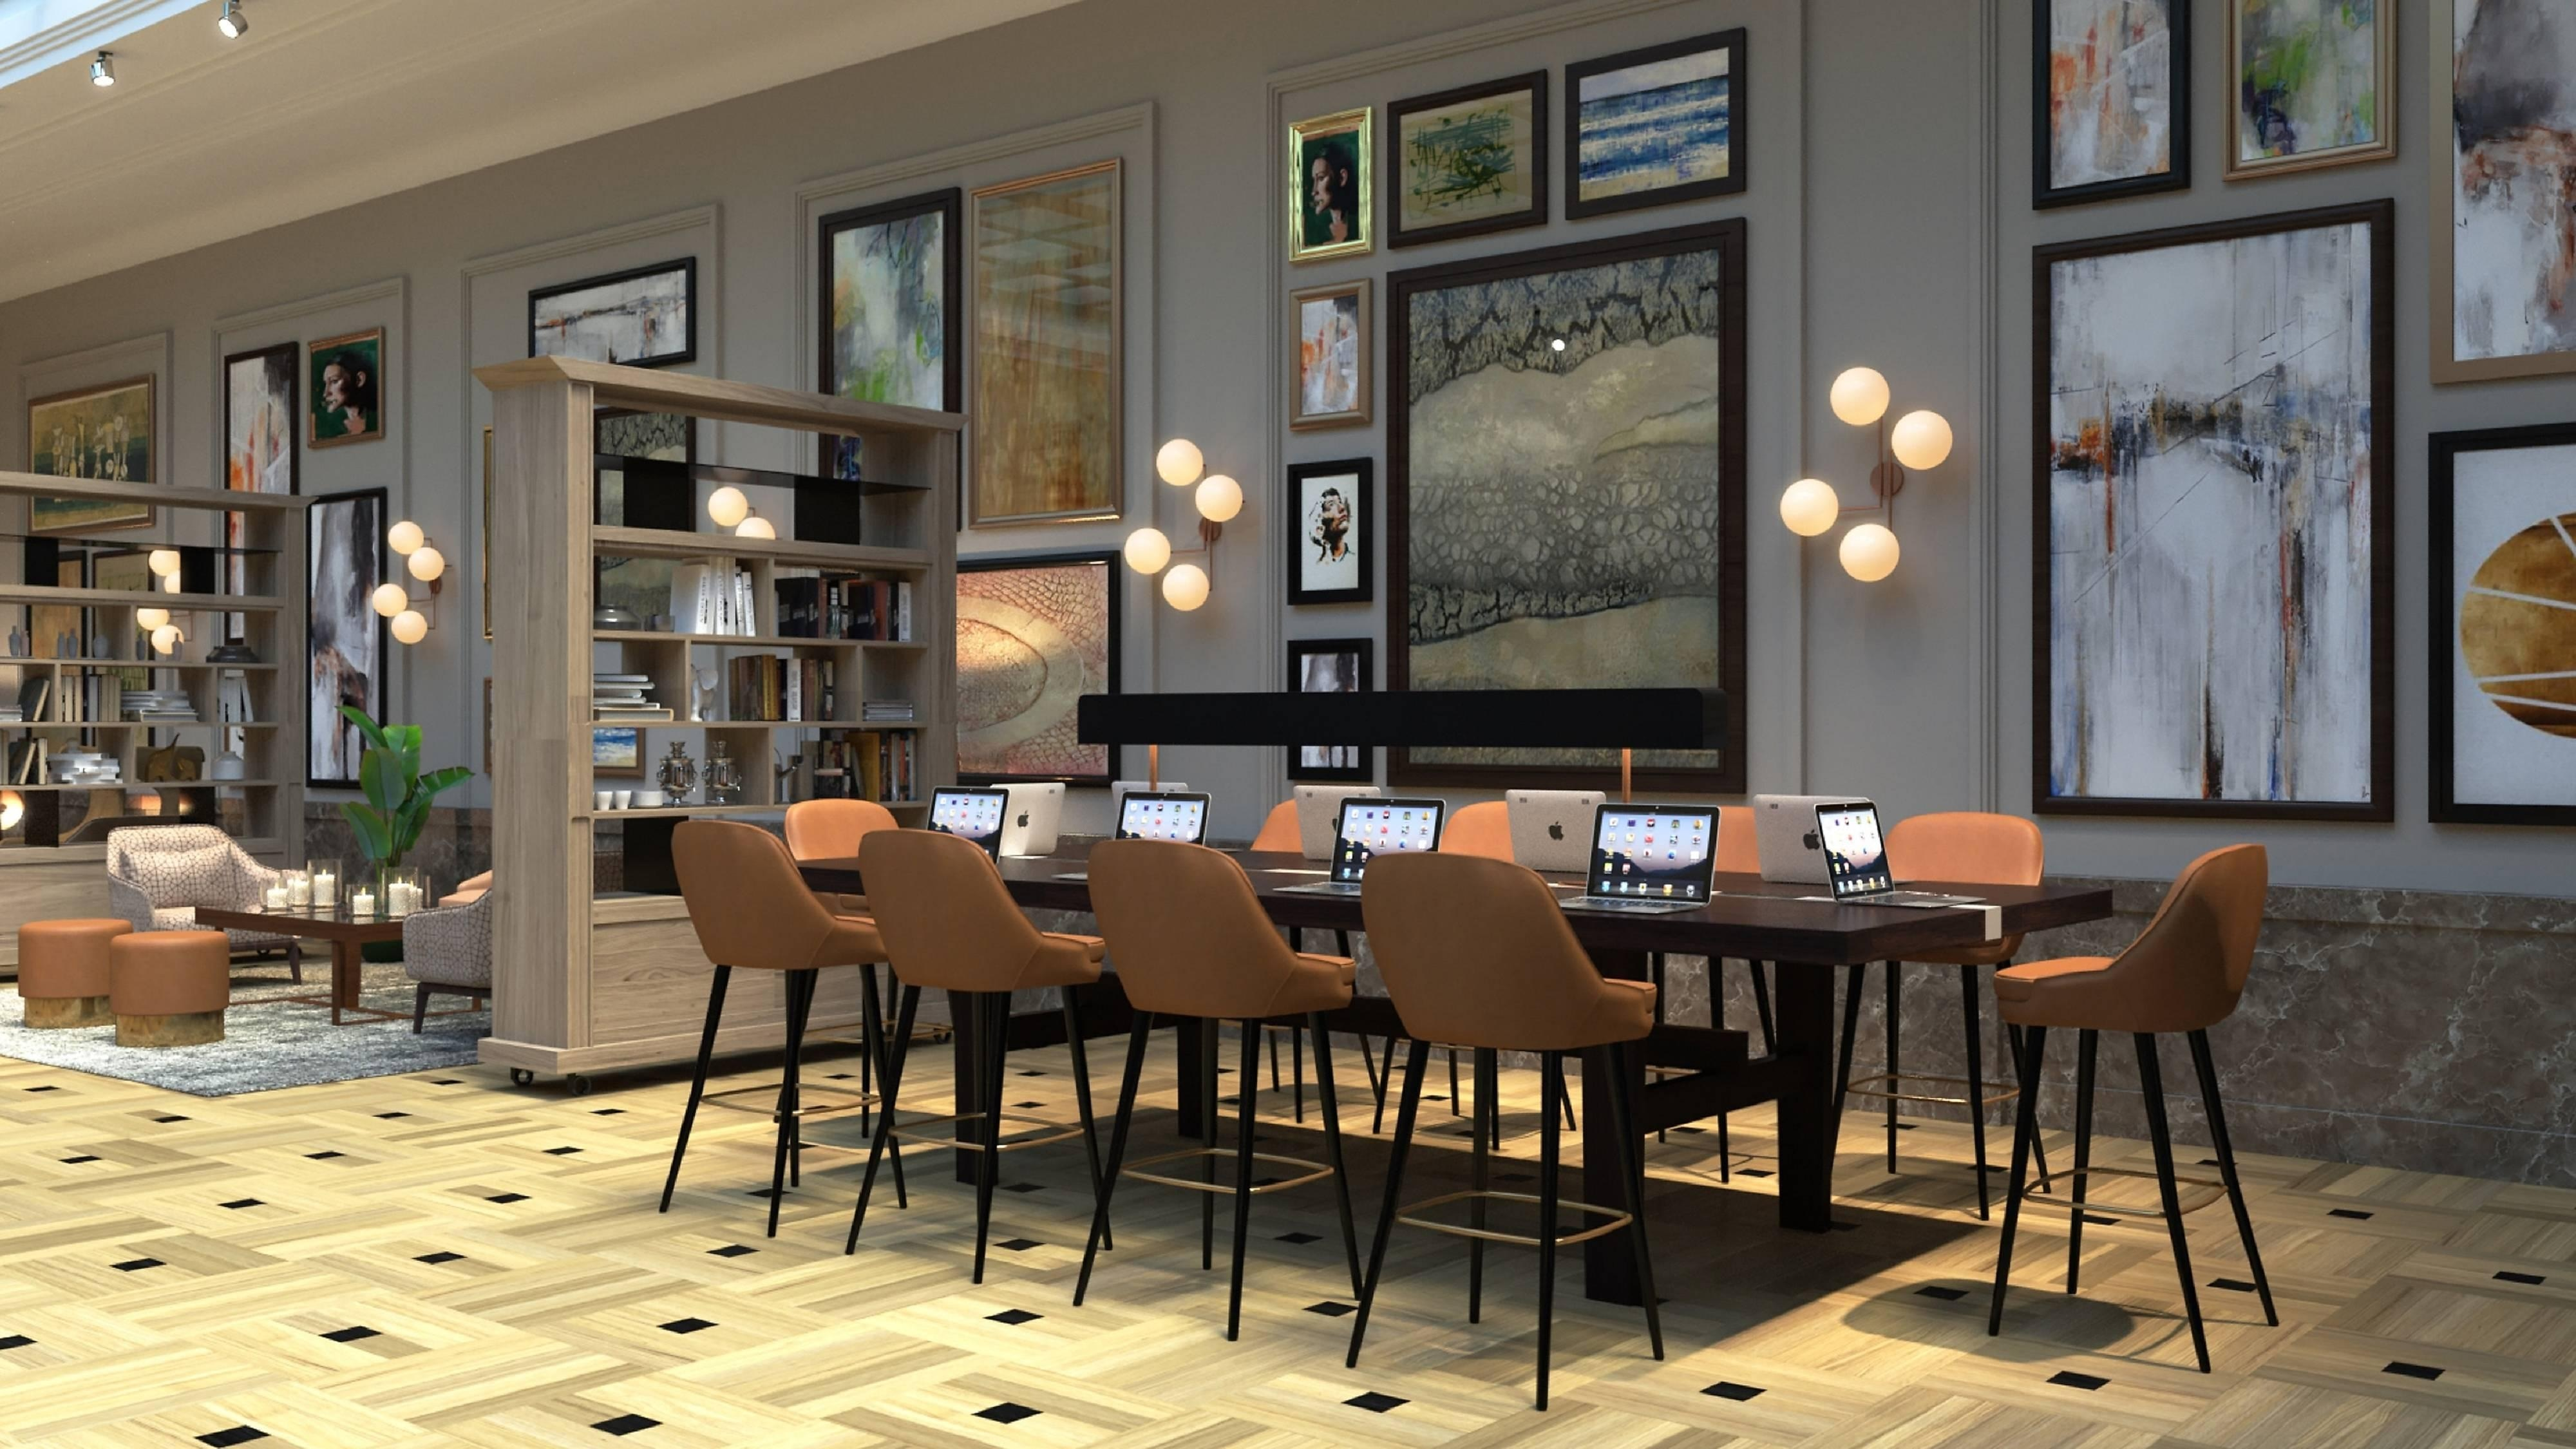 Hotel Elephant a Luxury Collection Hotel Weimar - Business Center